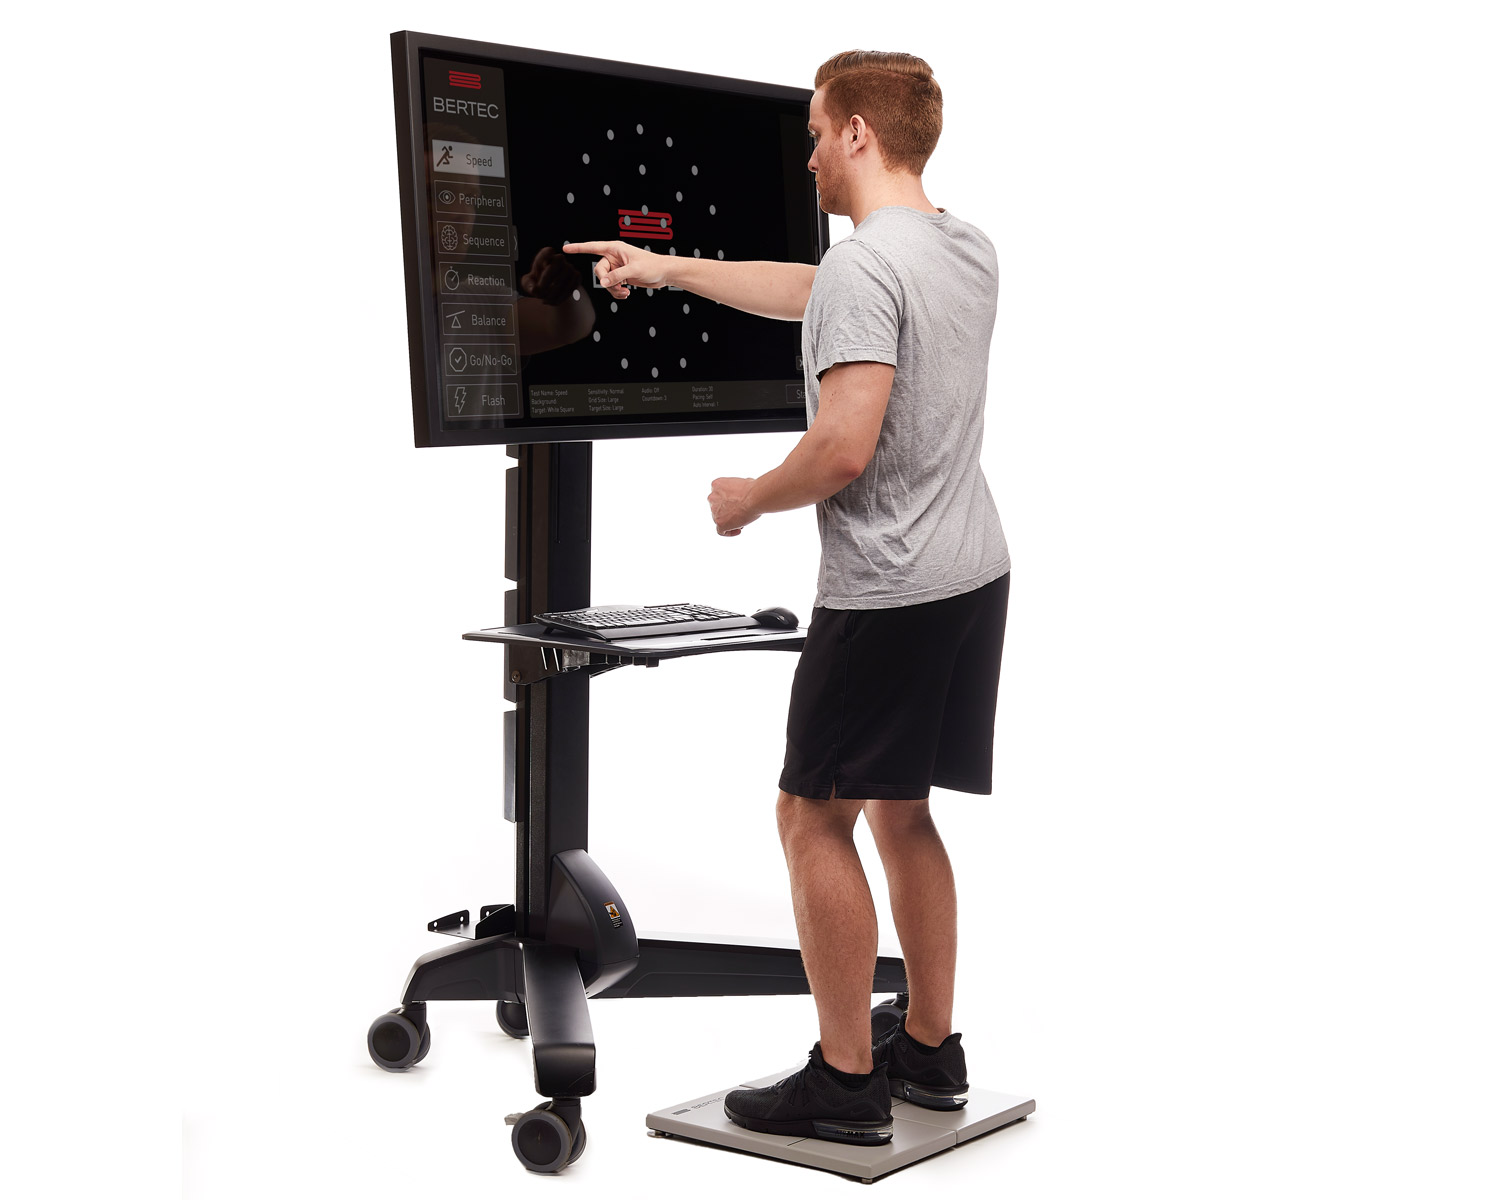 Vision Trainer - The Bertec Vision Trainer (BVT) offers performance testing and training programs to quantify reaction times, eye-hand coordination, and visual memory. Impairments in these areas can compromise one's ability to drive, play sports, or even write. Features in the BVT allow for customization of many variables to customize training: number of targets, size of targets, speed of targets, and dynamic visual backgrounds.Learn More